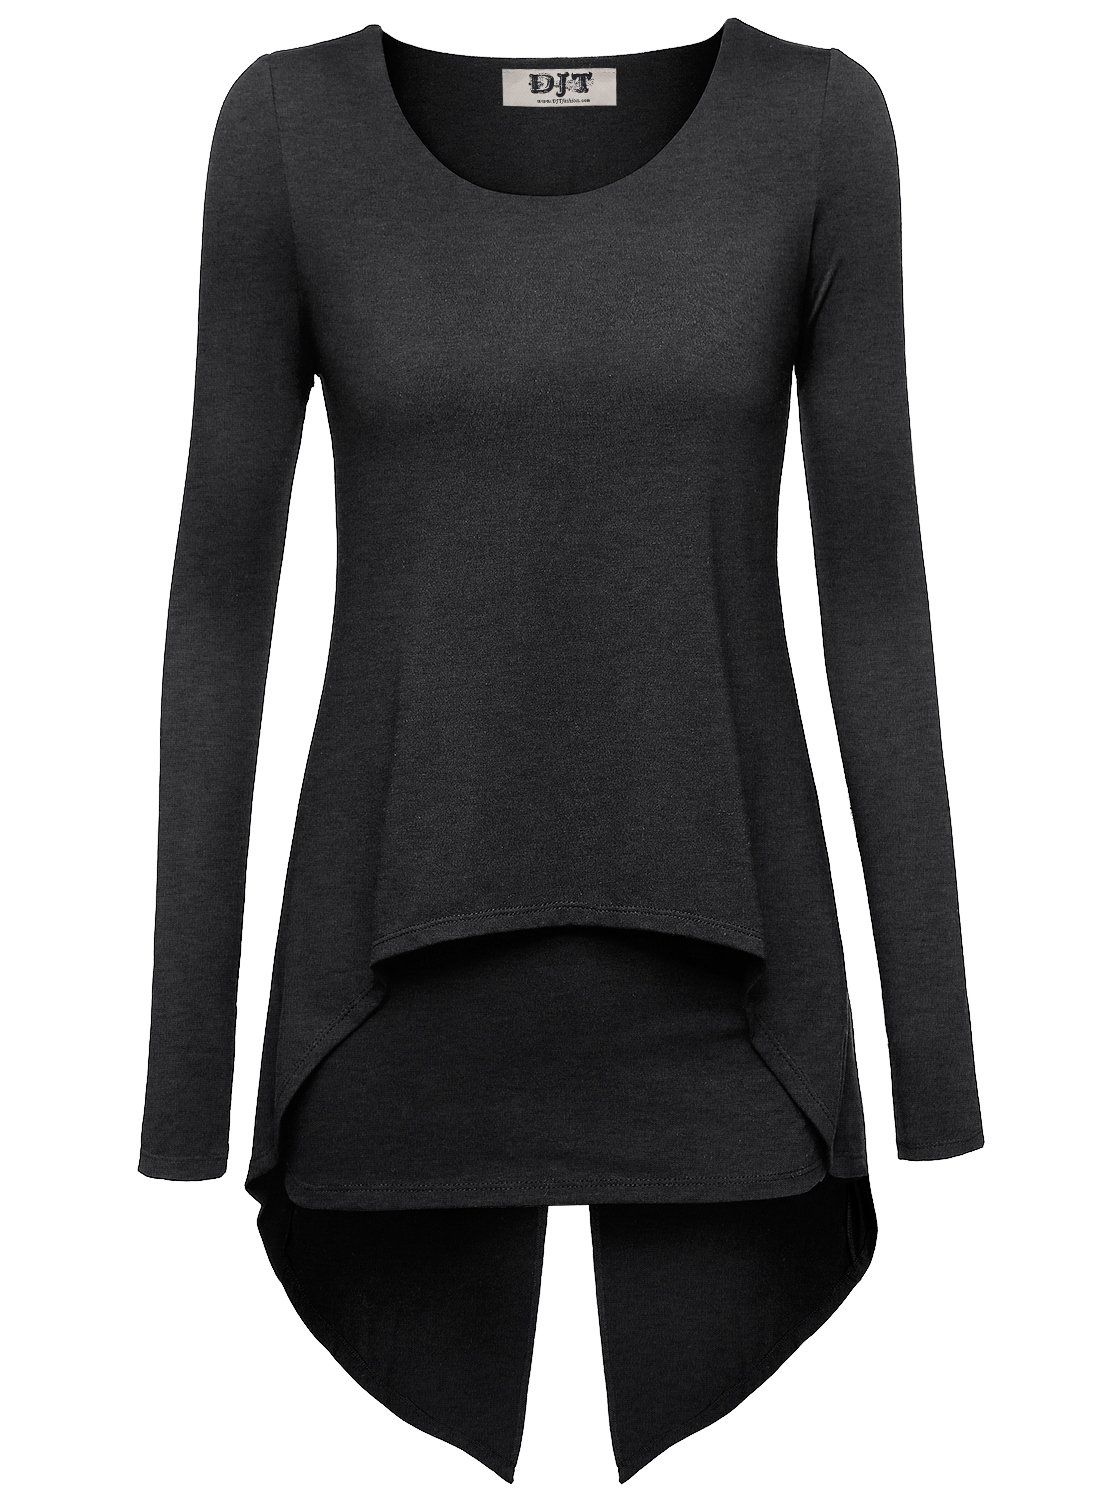 49922fddc7 DJT Women Long Sleeve Round Neck Layered Irregular Hem Tunic Tops T-shirt  Blouse Dark Grey X-Large